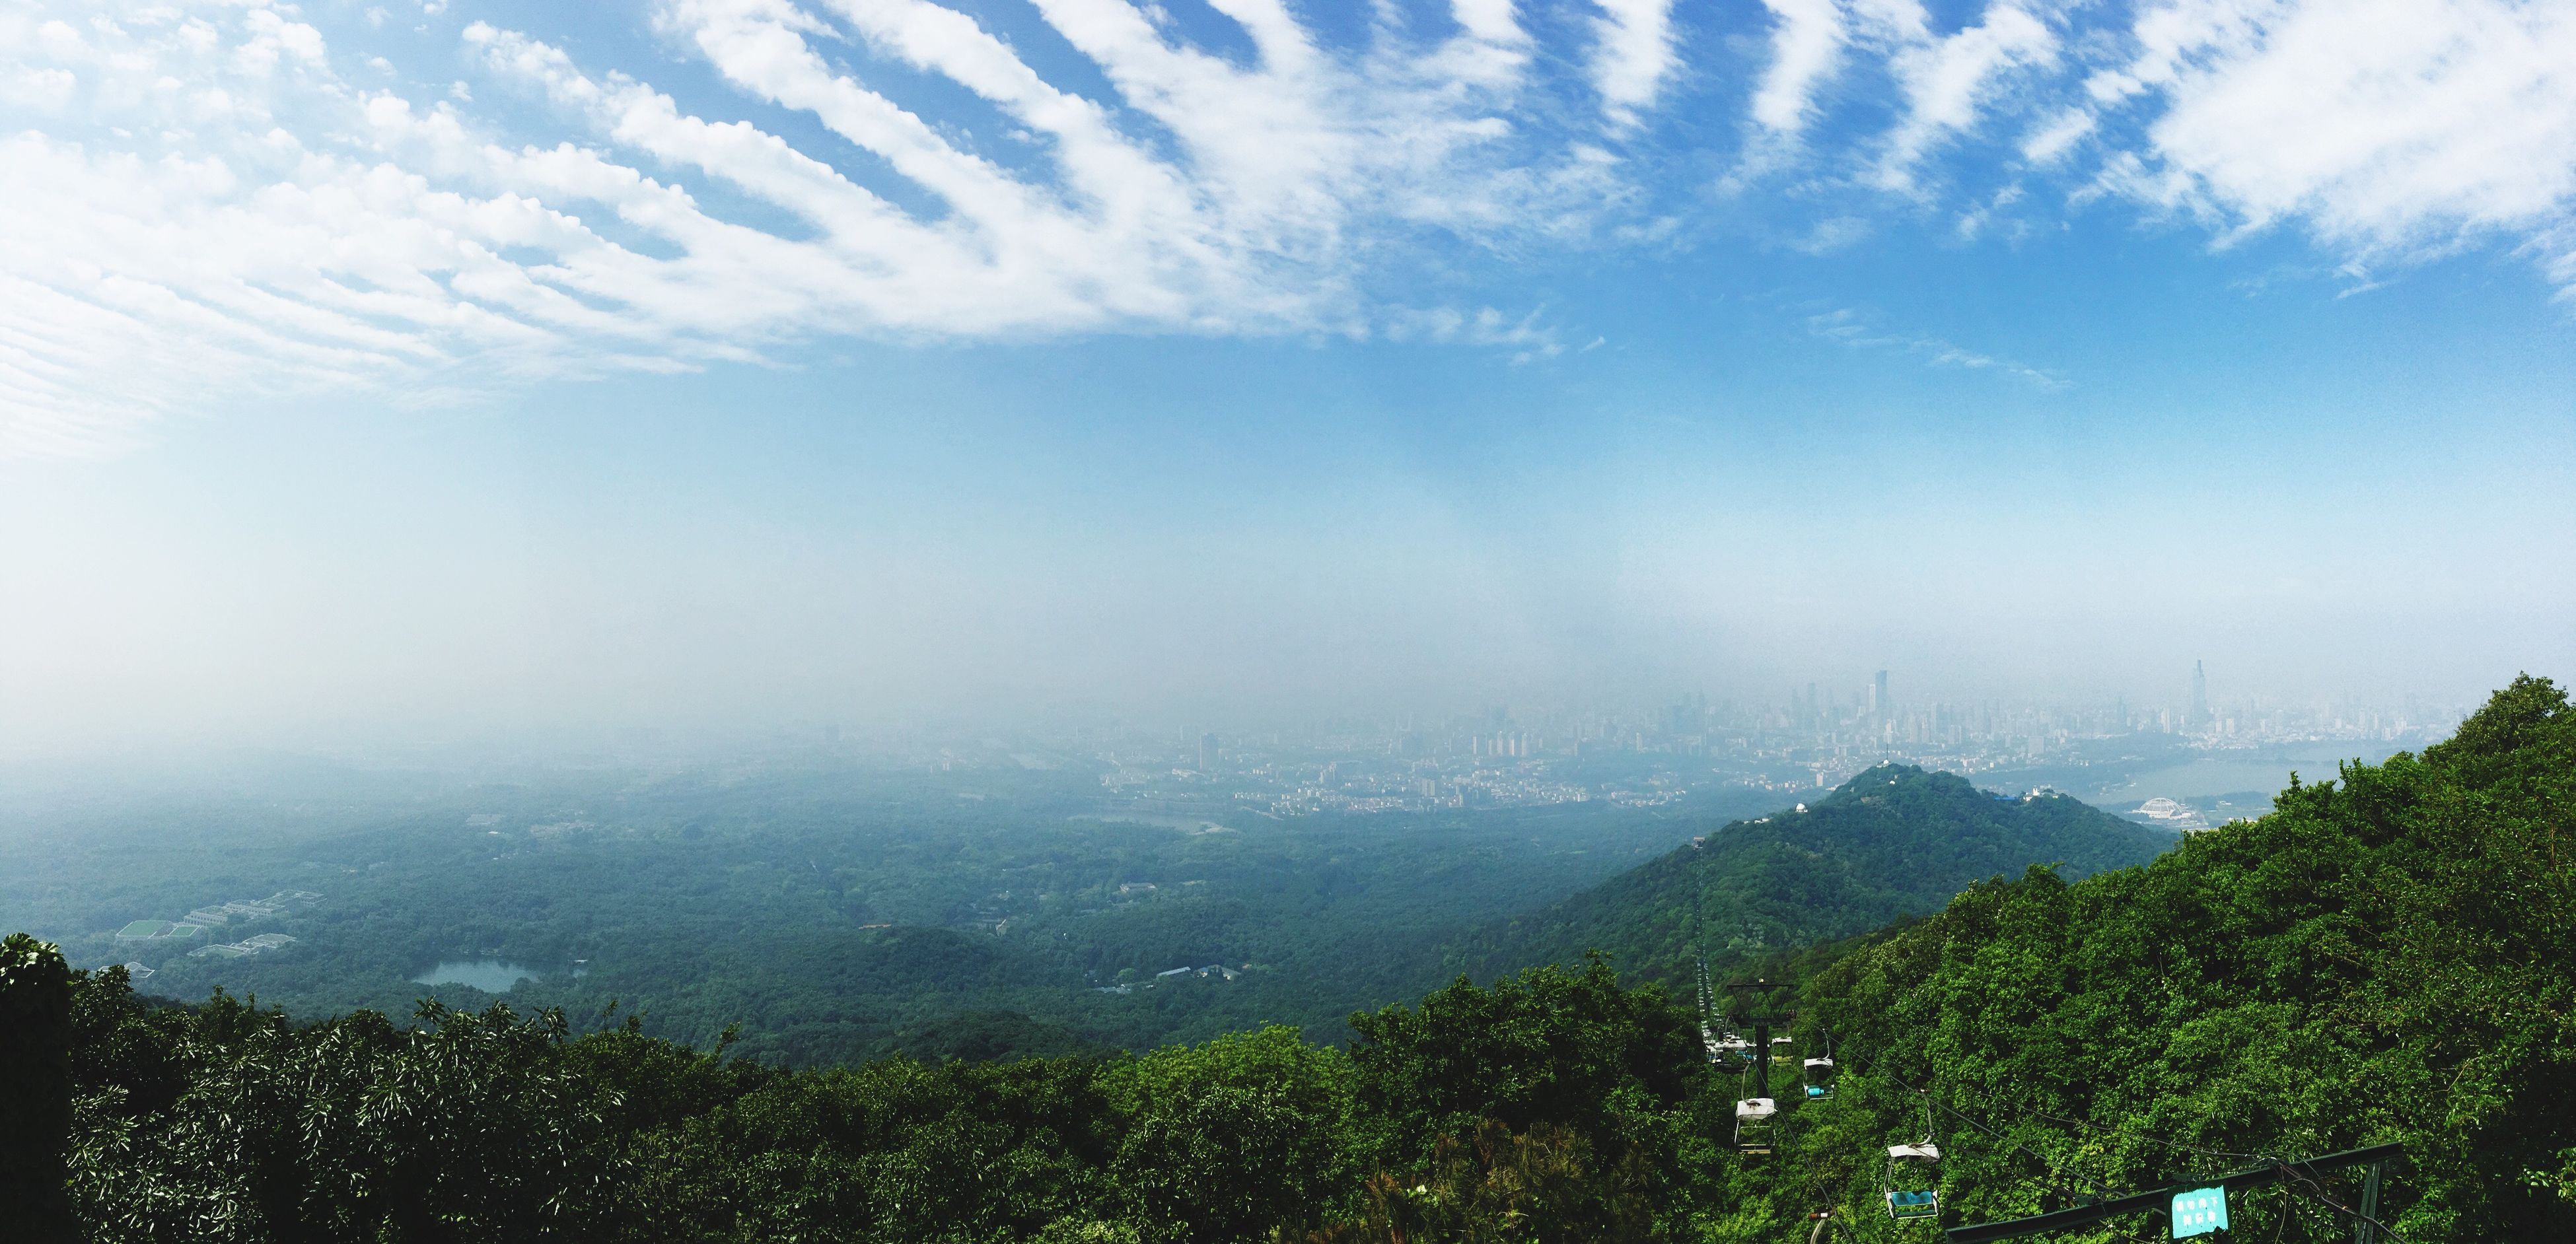 mountain, scenics, tranquil scene, beauty in nature, tranquility, landscape, sky, tree, nature, mountain range, cloud - sky, idyllic, weather, non-urban scene, day, fog, outdoors, remote, no people, cloudy